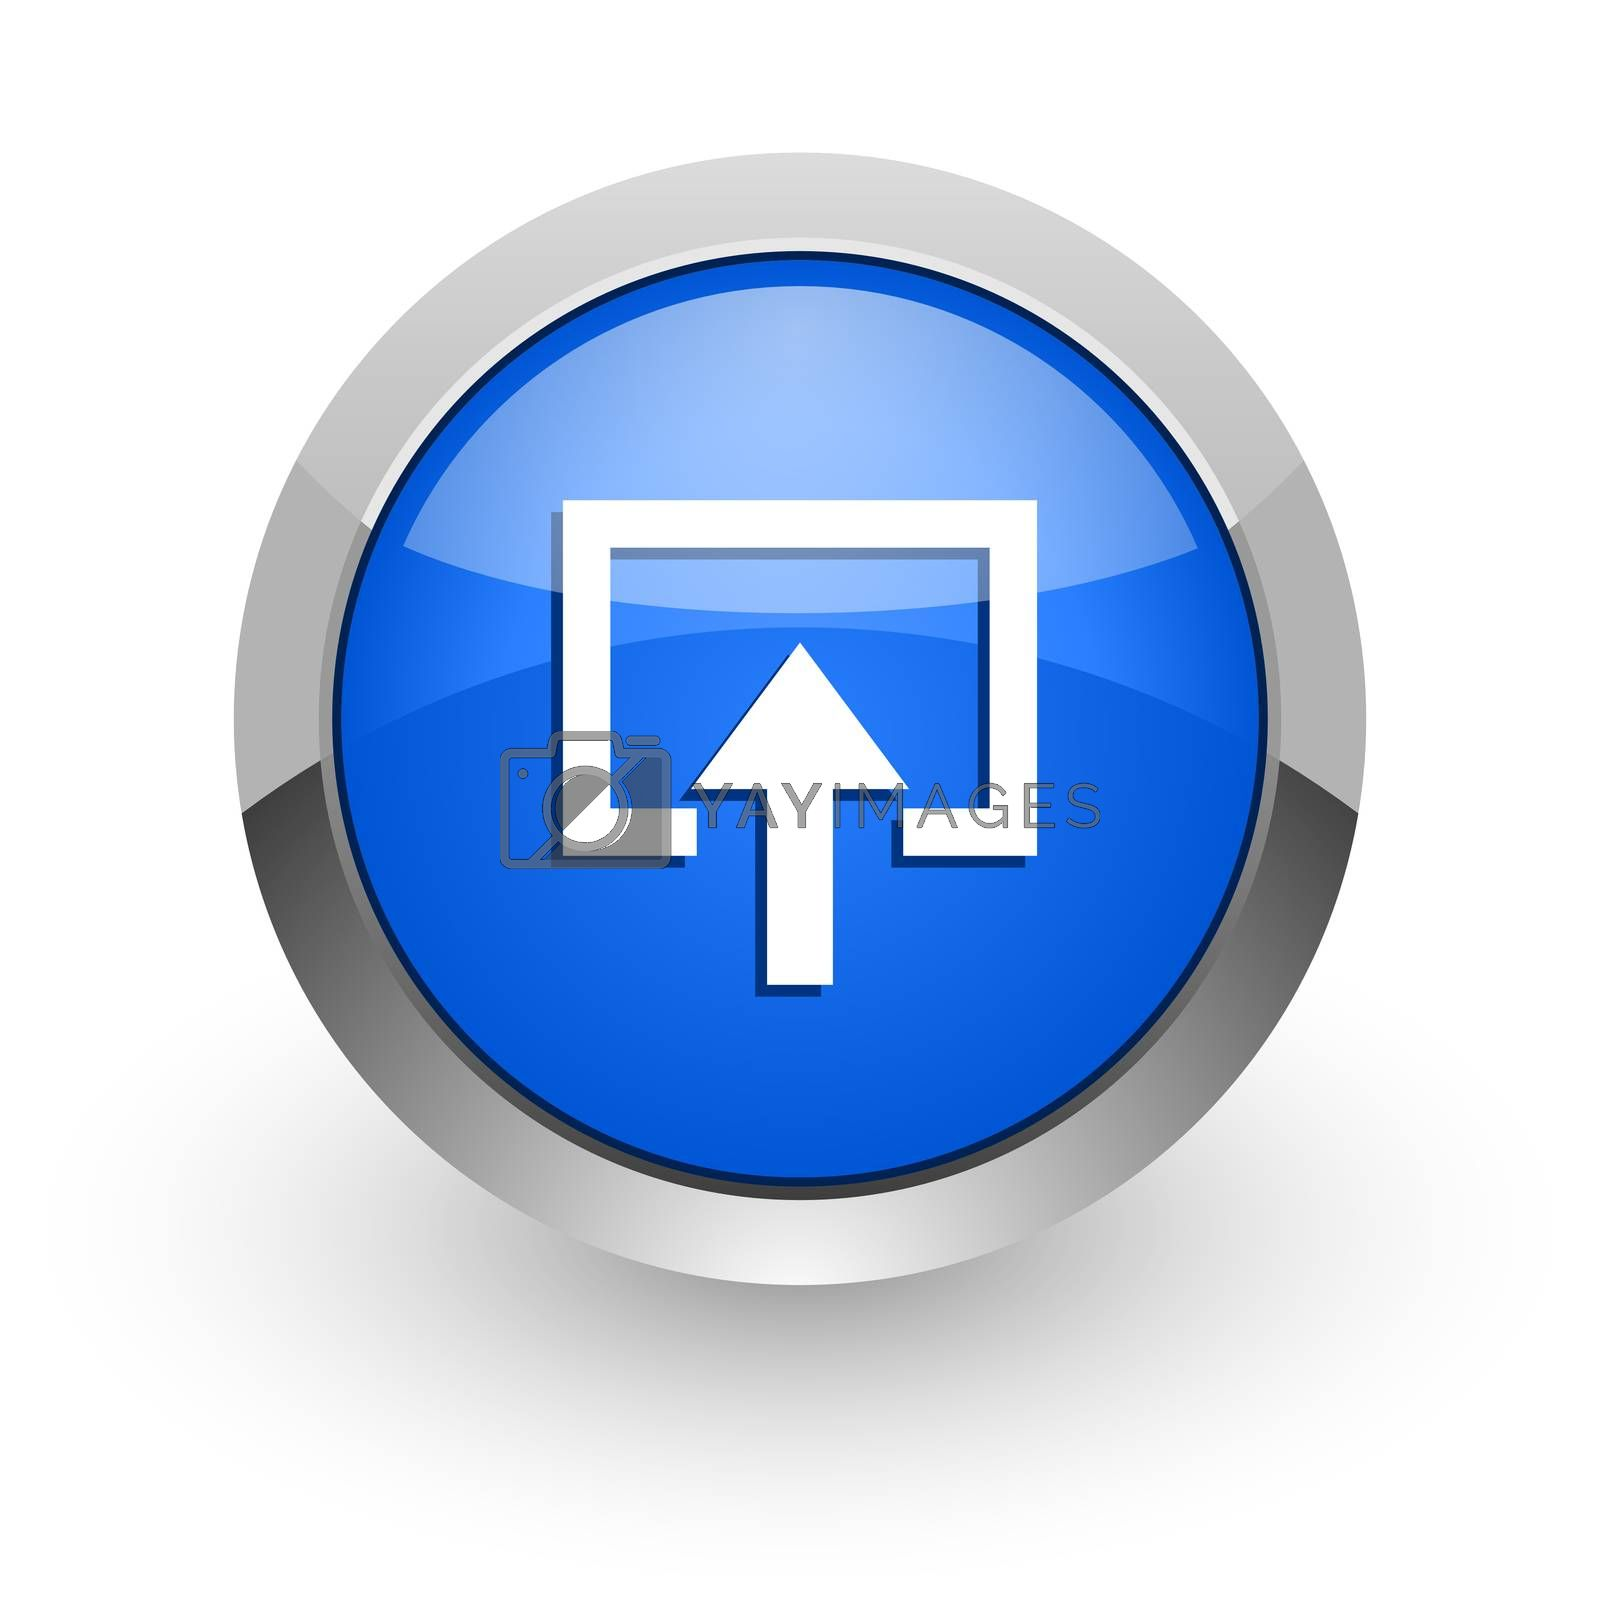 Royalty free image of enter blue glossy web icon by alexwhite